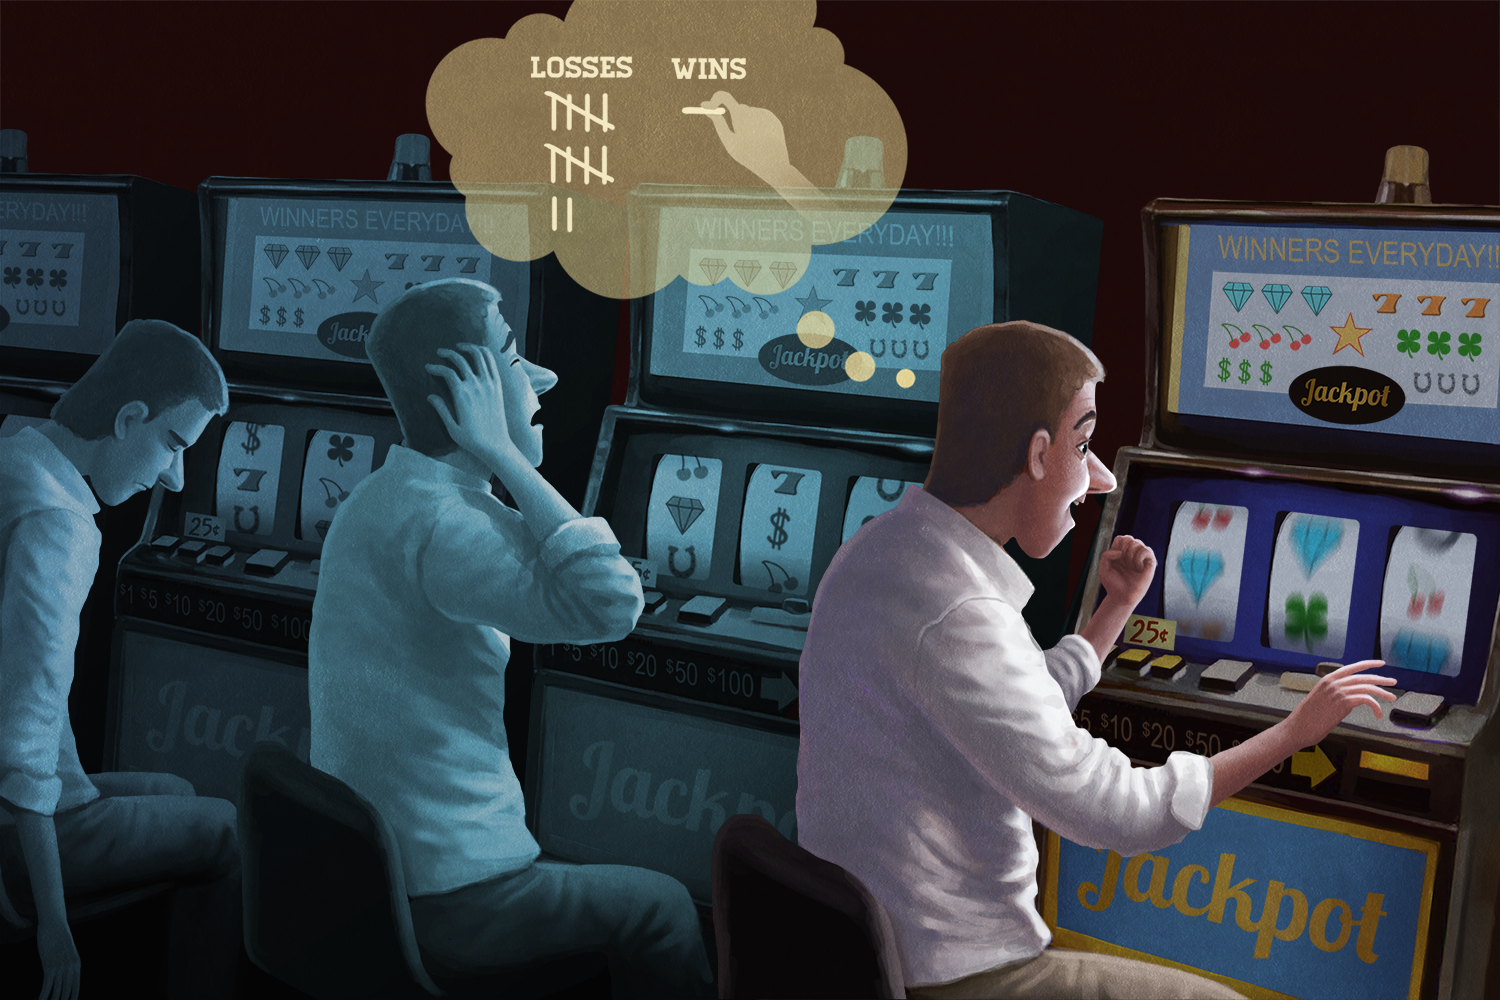 illustration of men sitting at slot machines